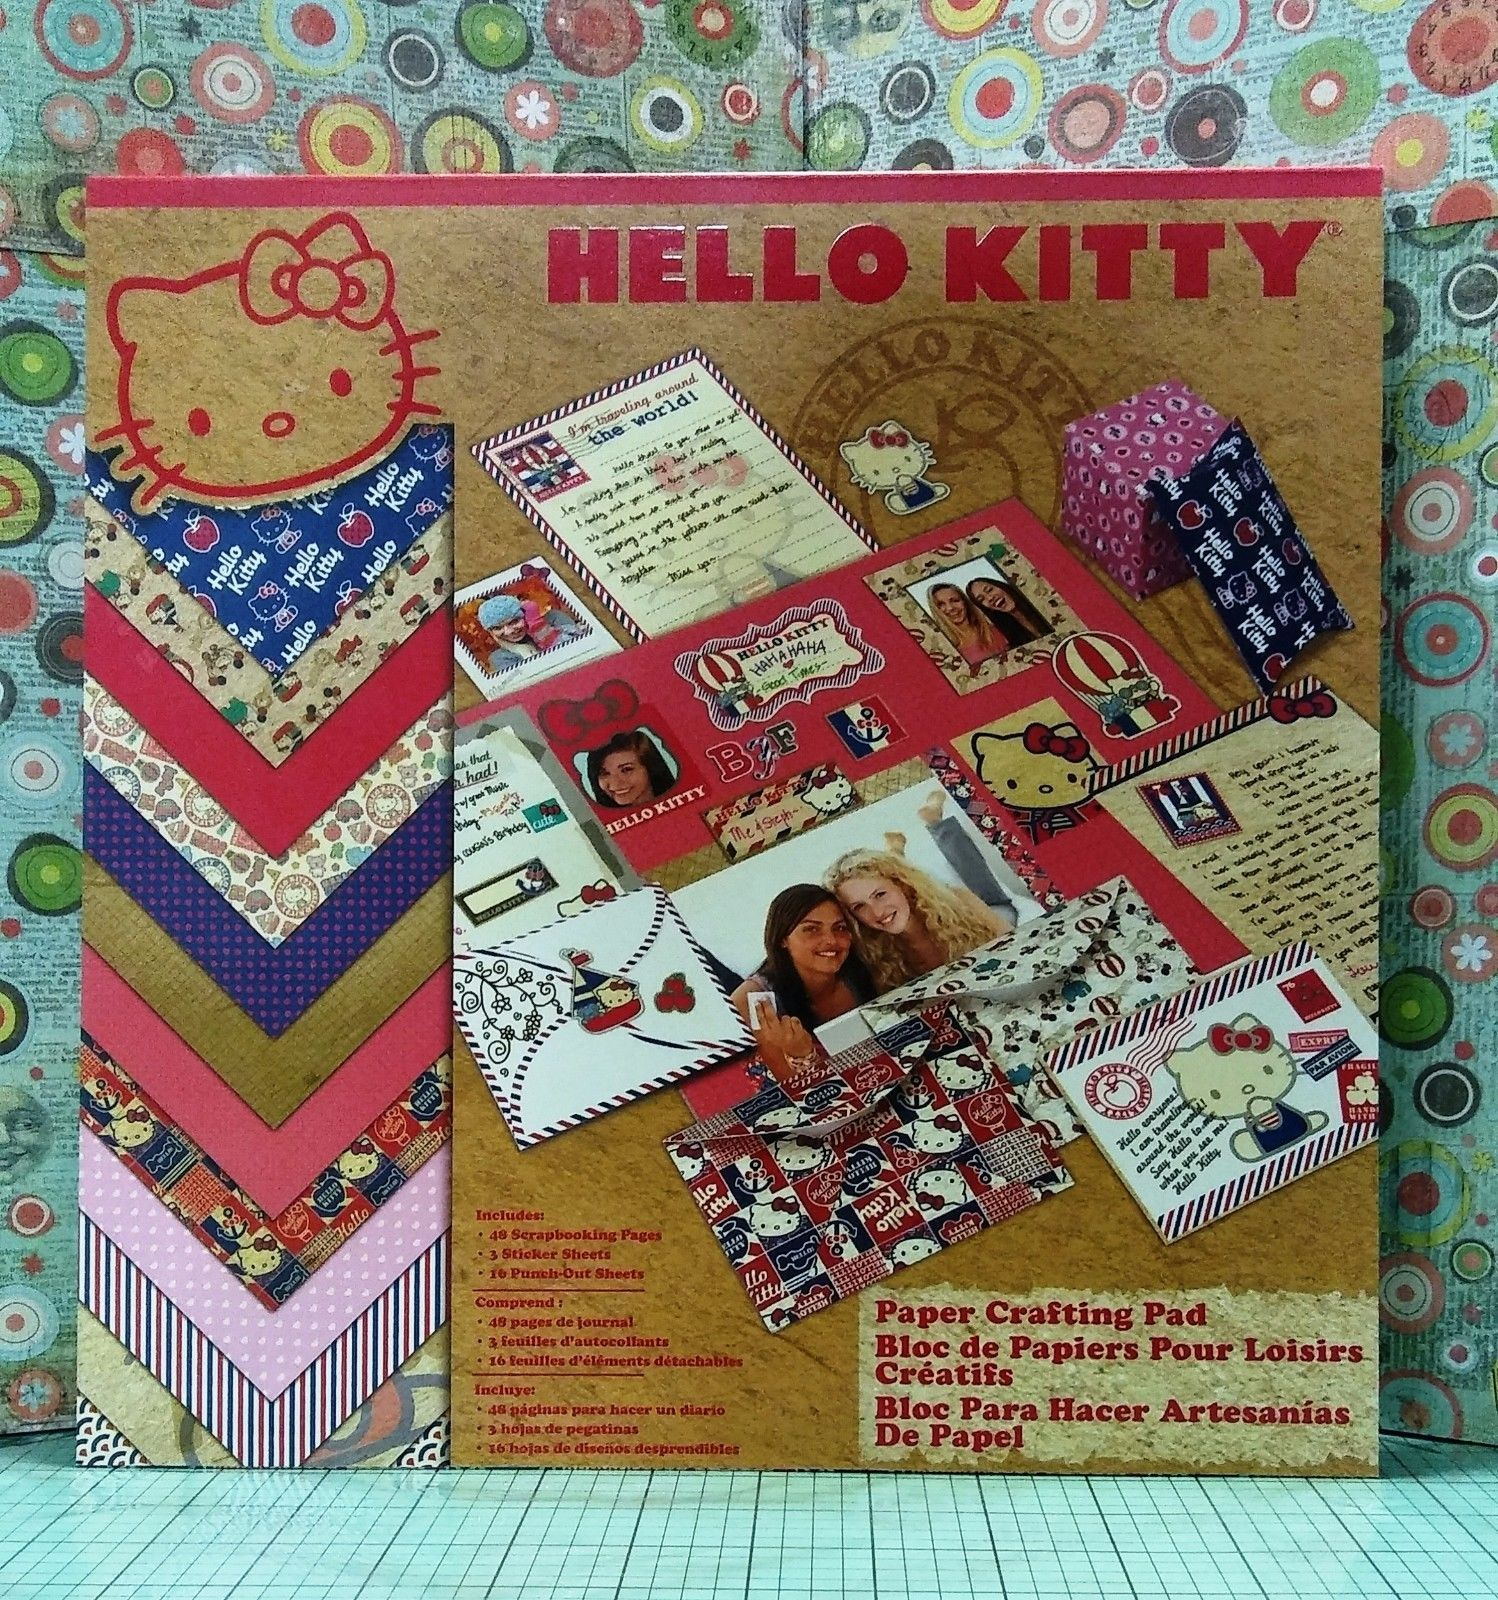 Cardstock 122662 Scrapbook Paper Pad 12x12 Discontinued Hello Kitty